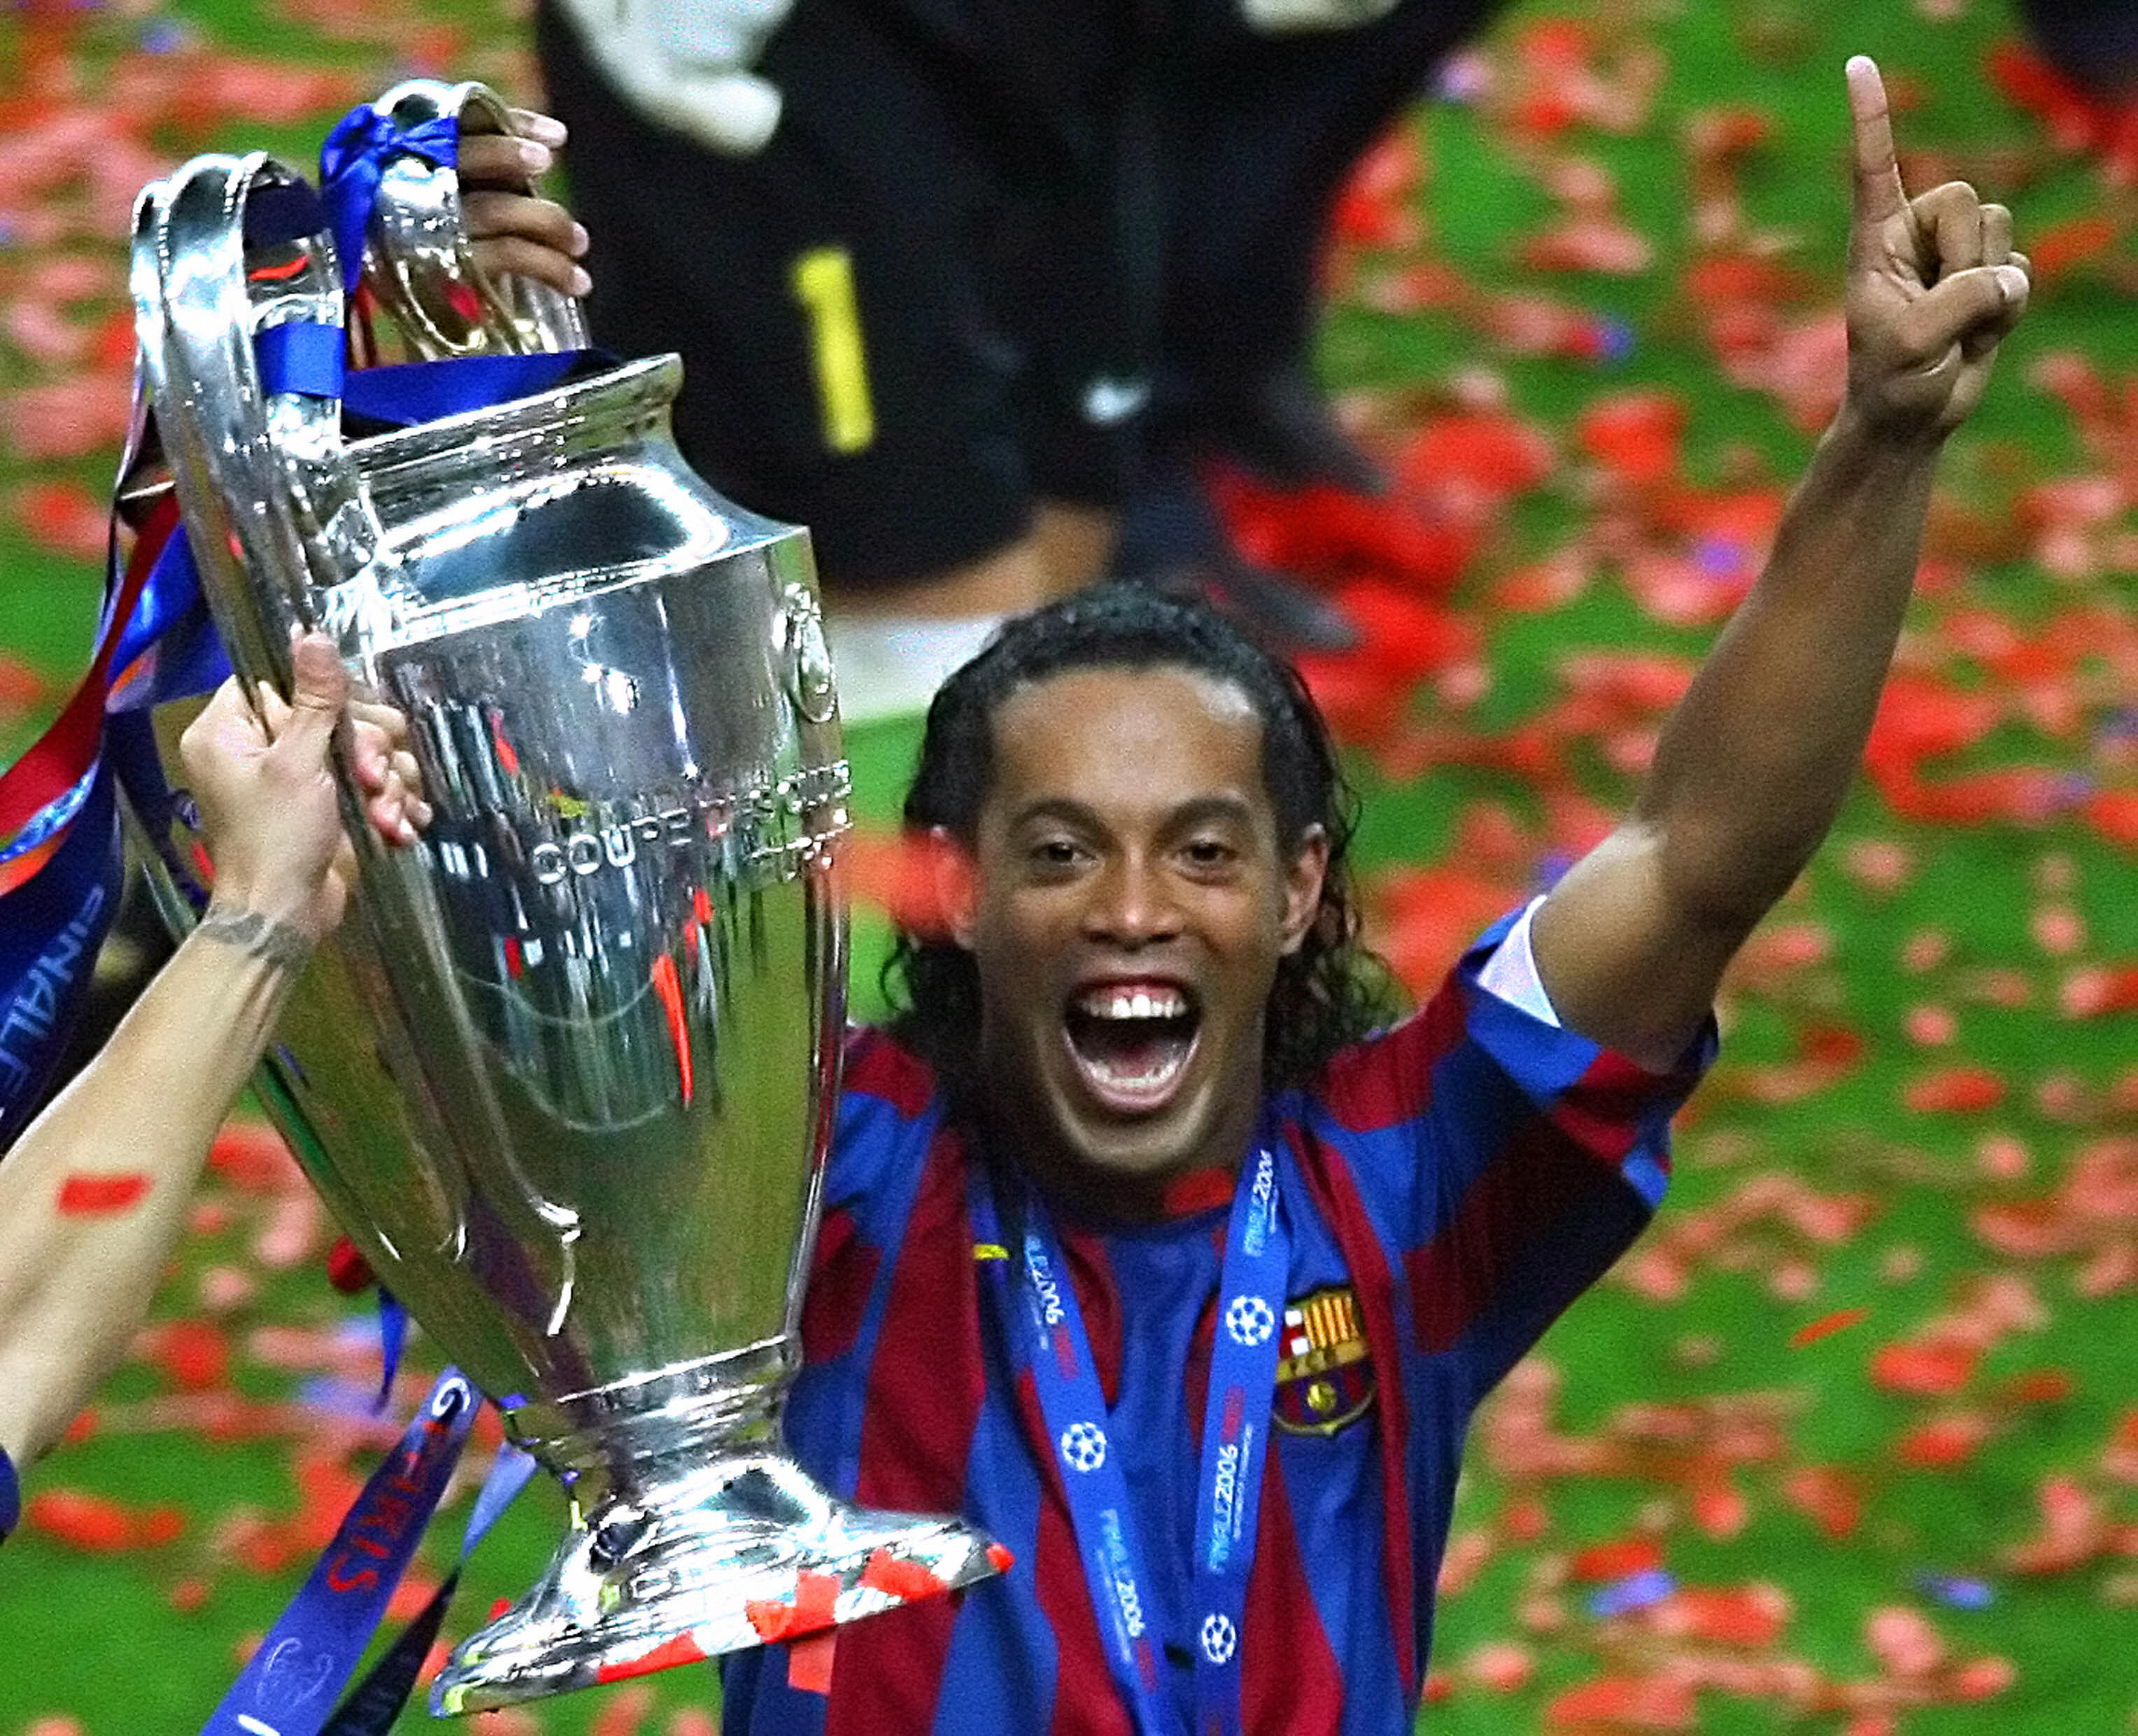 Barcelona went easy on Arsenal in 2006 Champions League final, says Ronaldinho